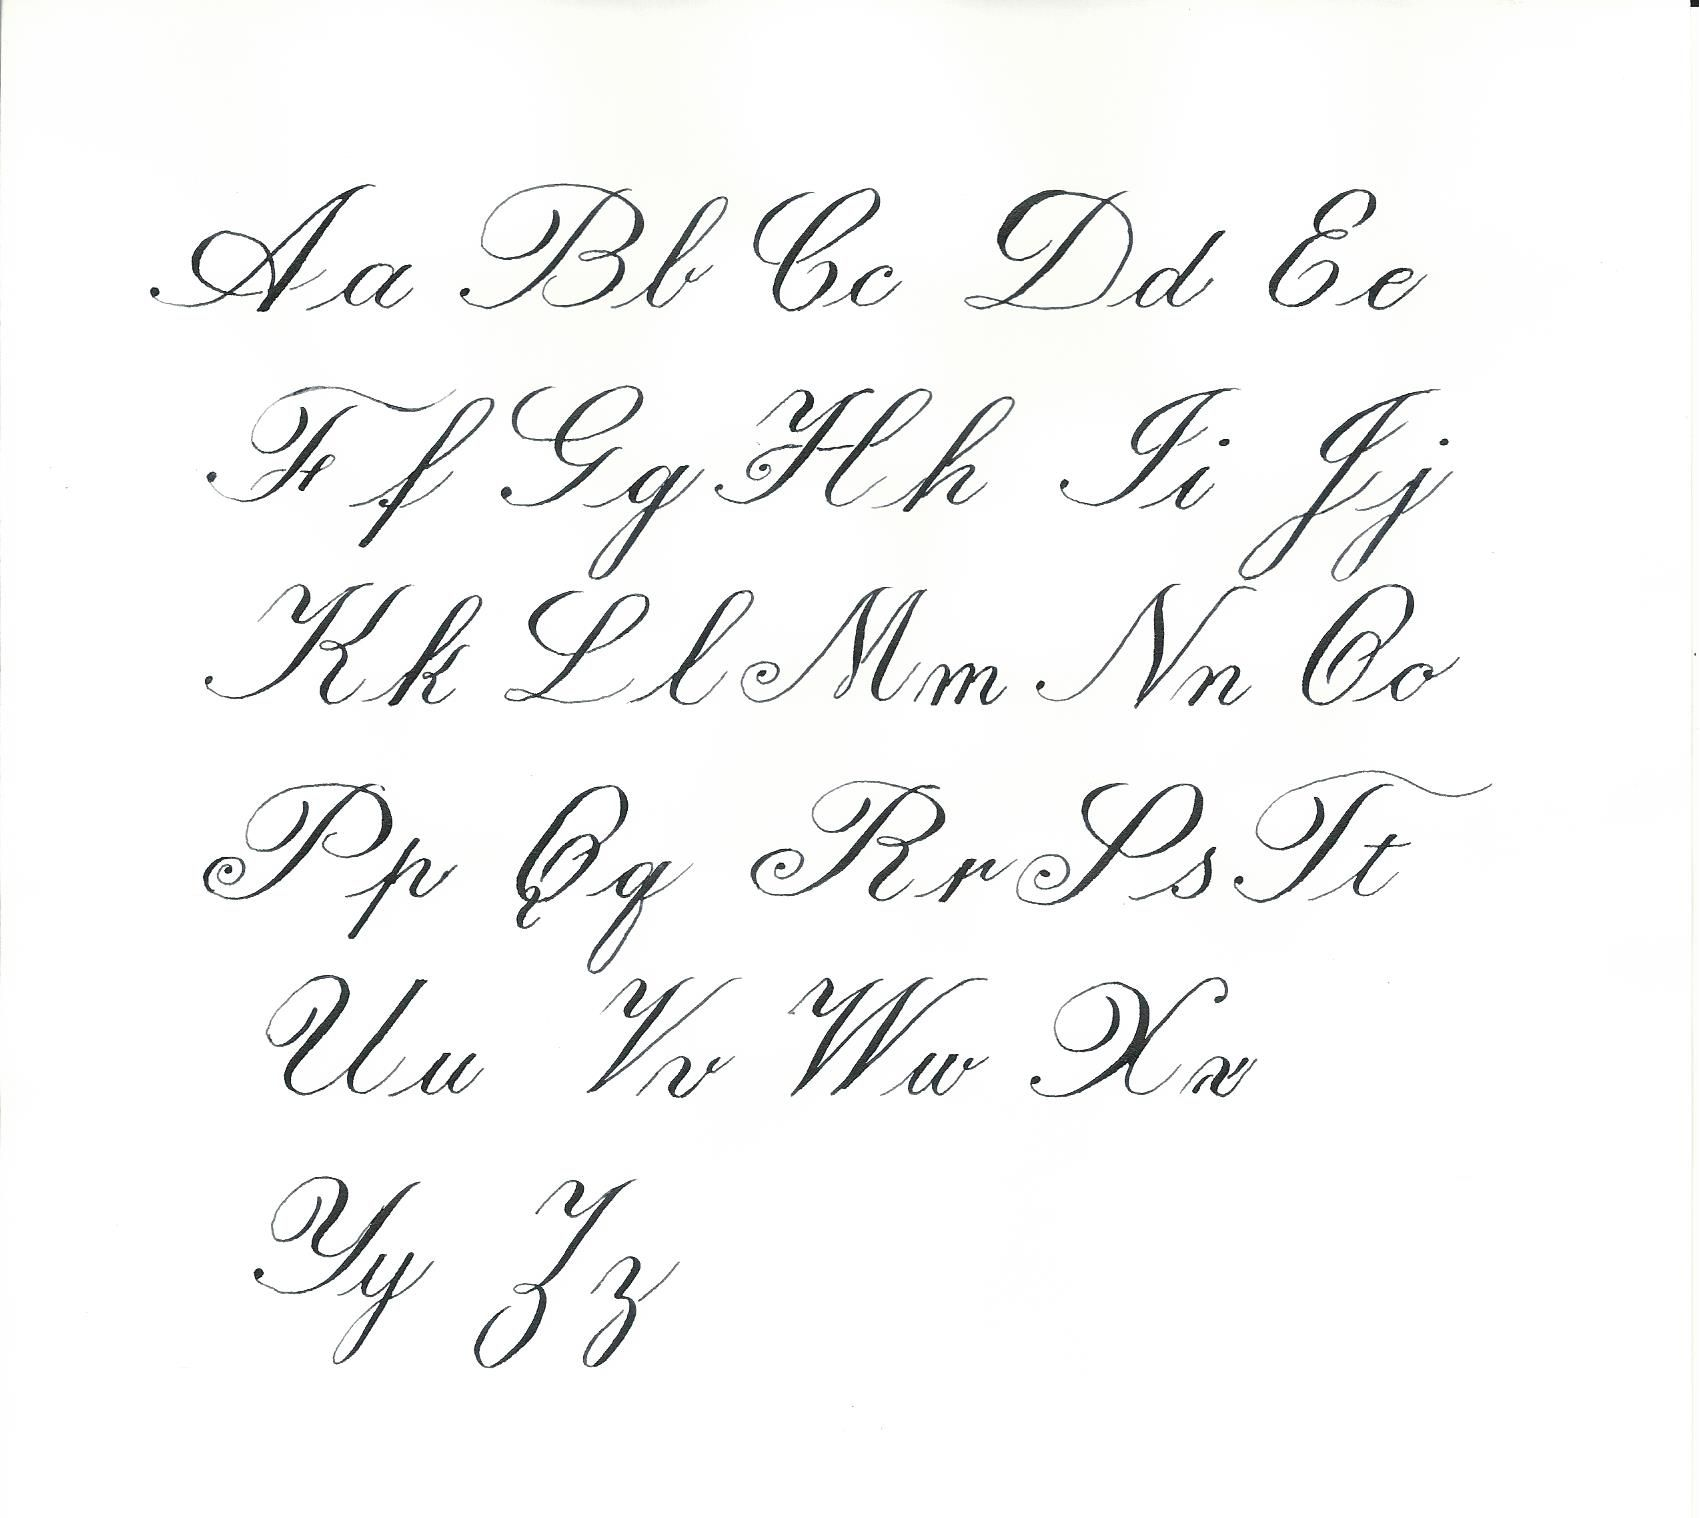 copperplate capital z - Google Search | pictures | Pinterest ...